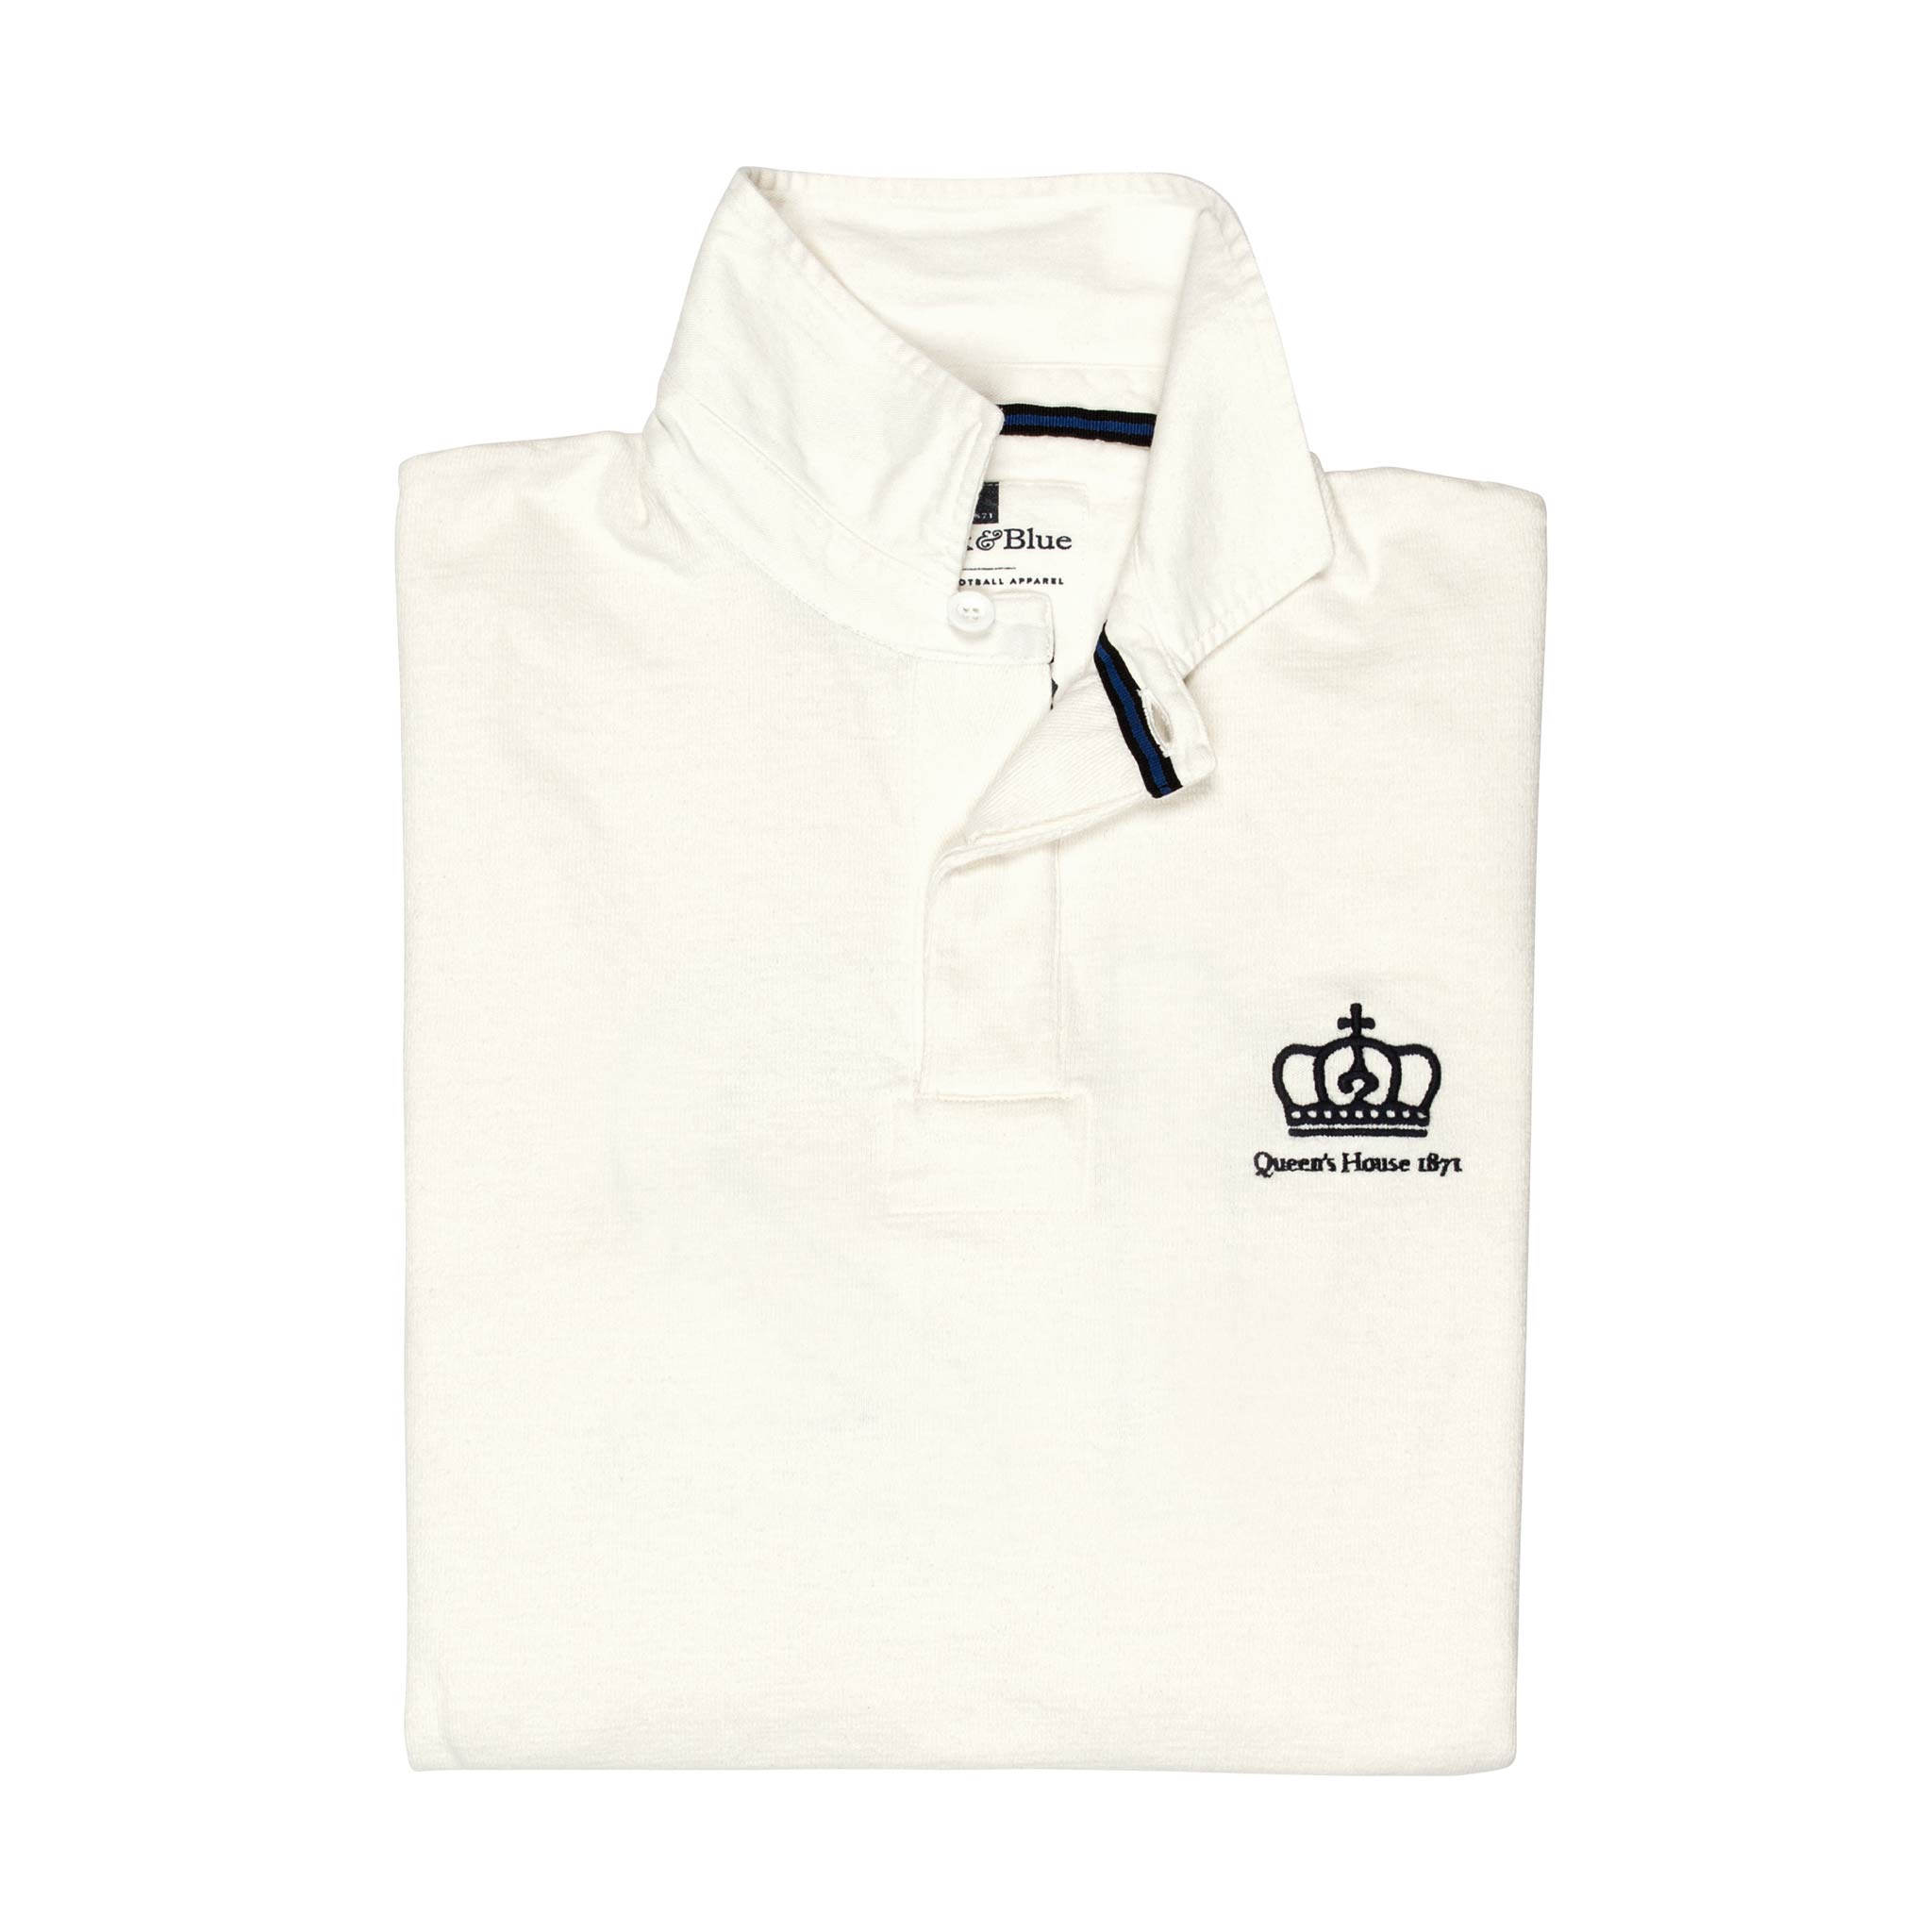 Queen's House 1871 Limited Edition Rugby Shirt - folded